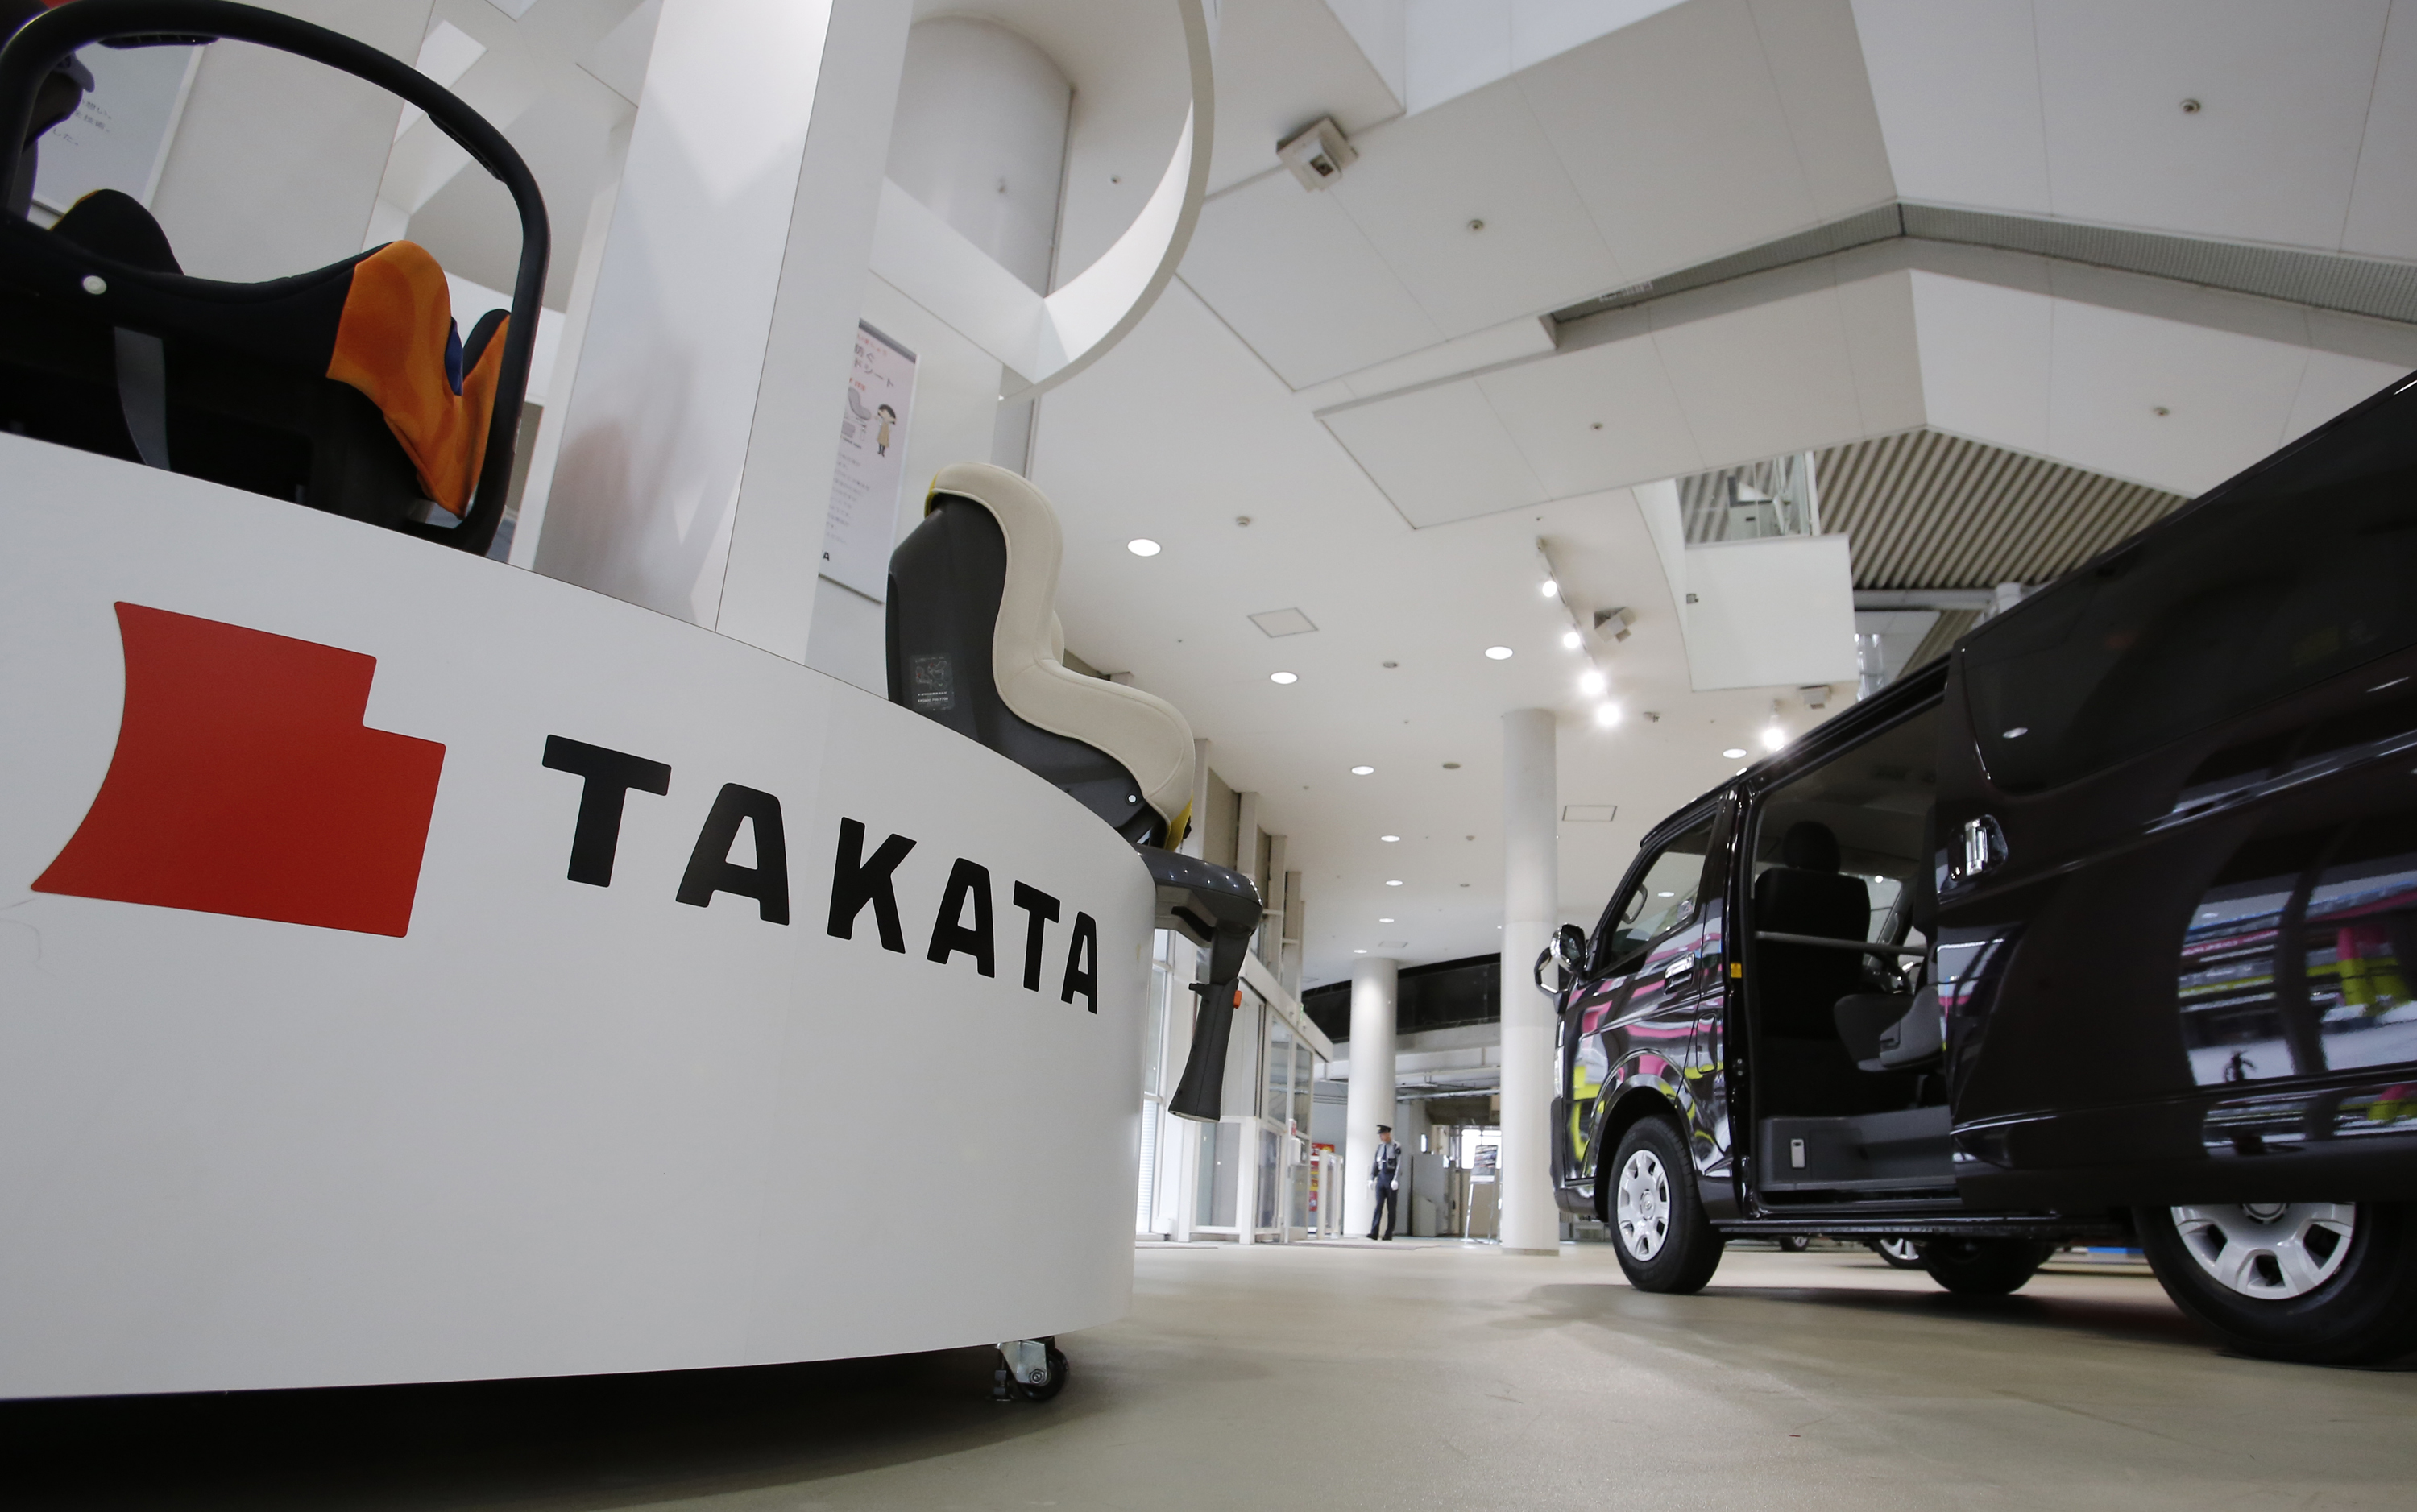 takata widens loss forecast as air bag recalls mount the japan times. Black Bedroom Furniture Sets. Home Design Ideas